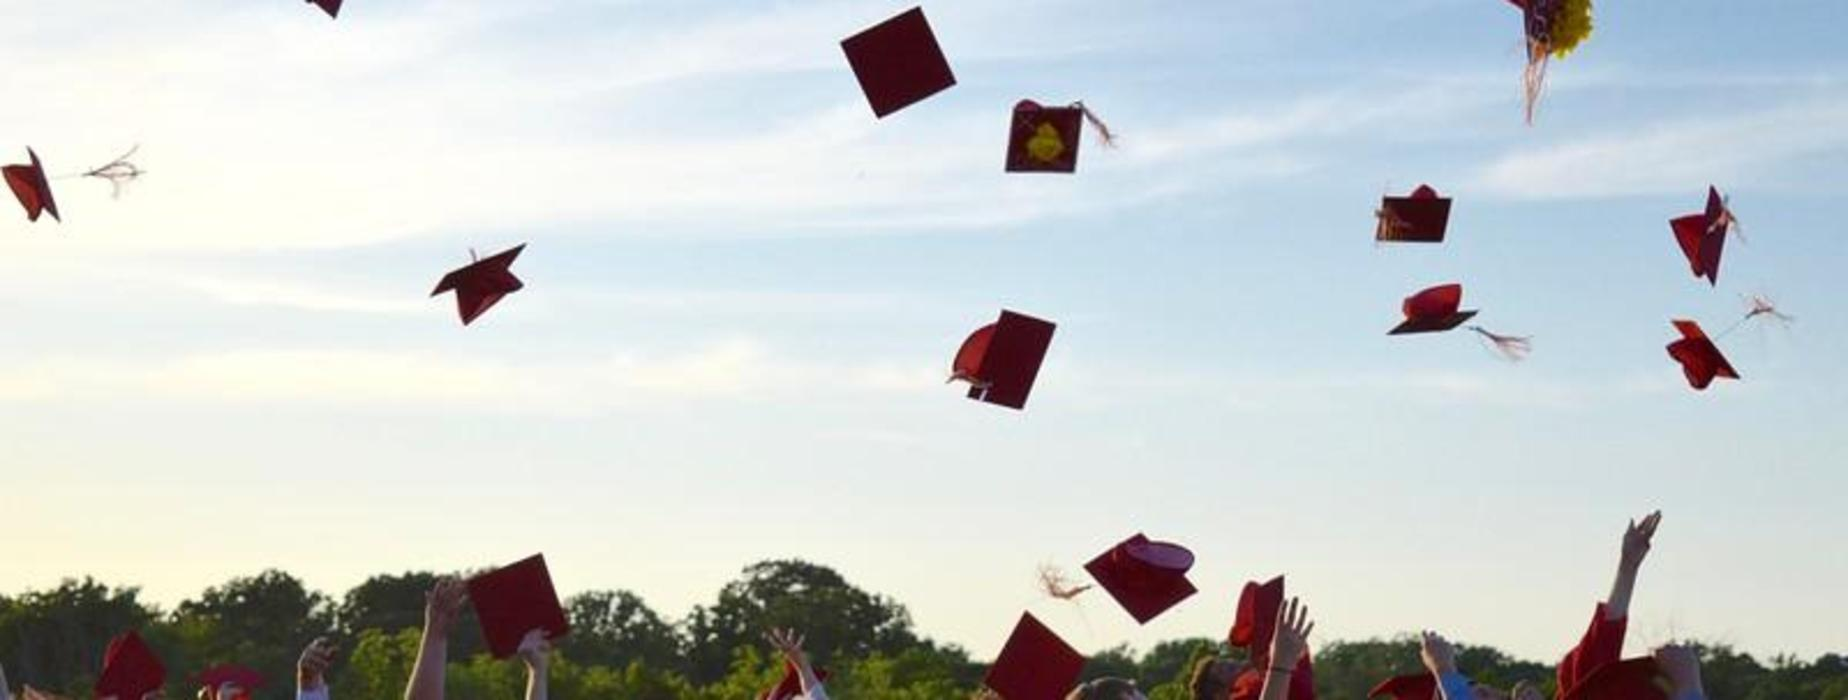 Graduation Caps flying in the air